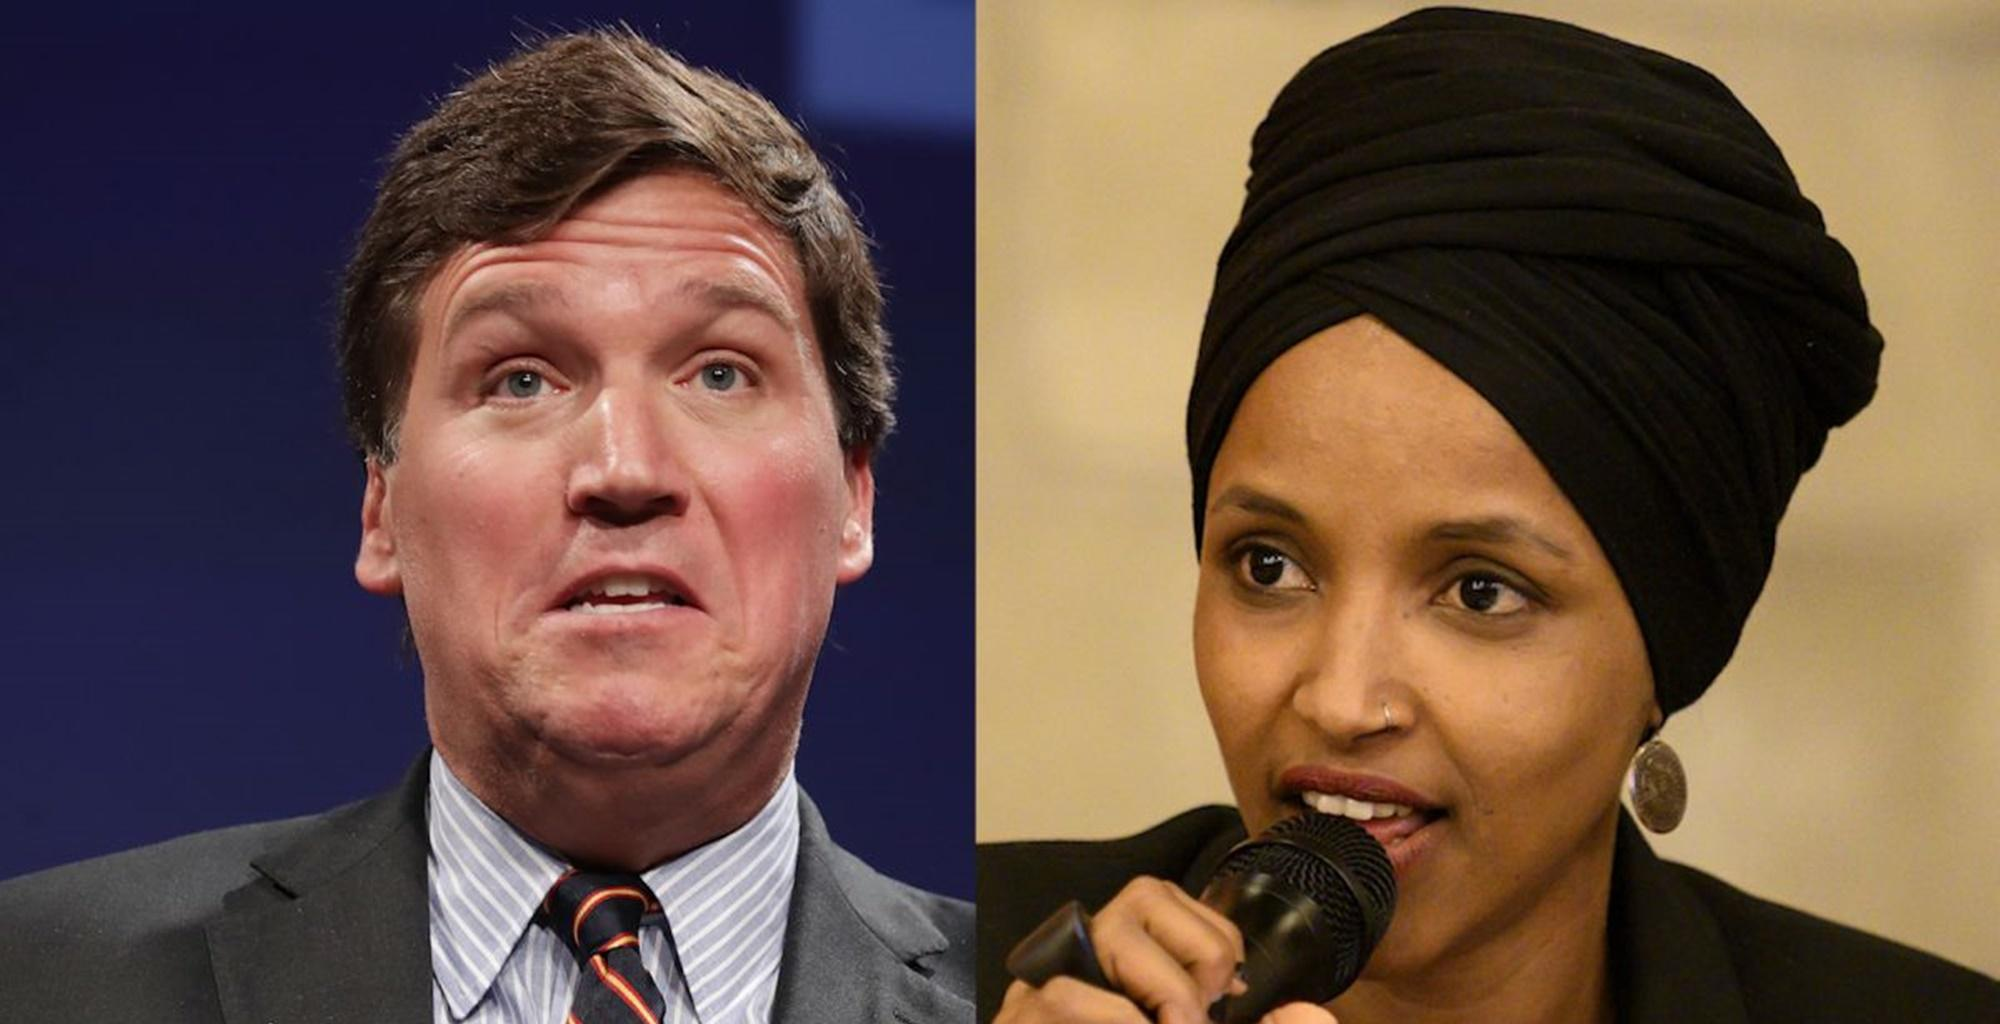 Tucker Carlson Takes His Fight With Ilhan Omar Fight To The Point Of No Return By Claiming She Is Dangerous